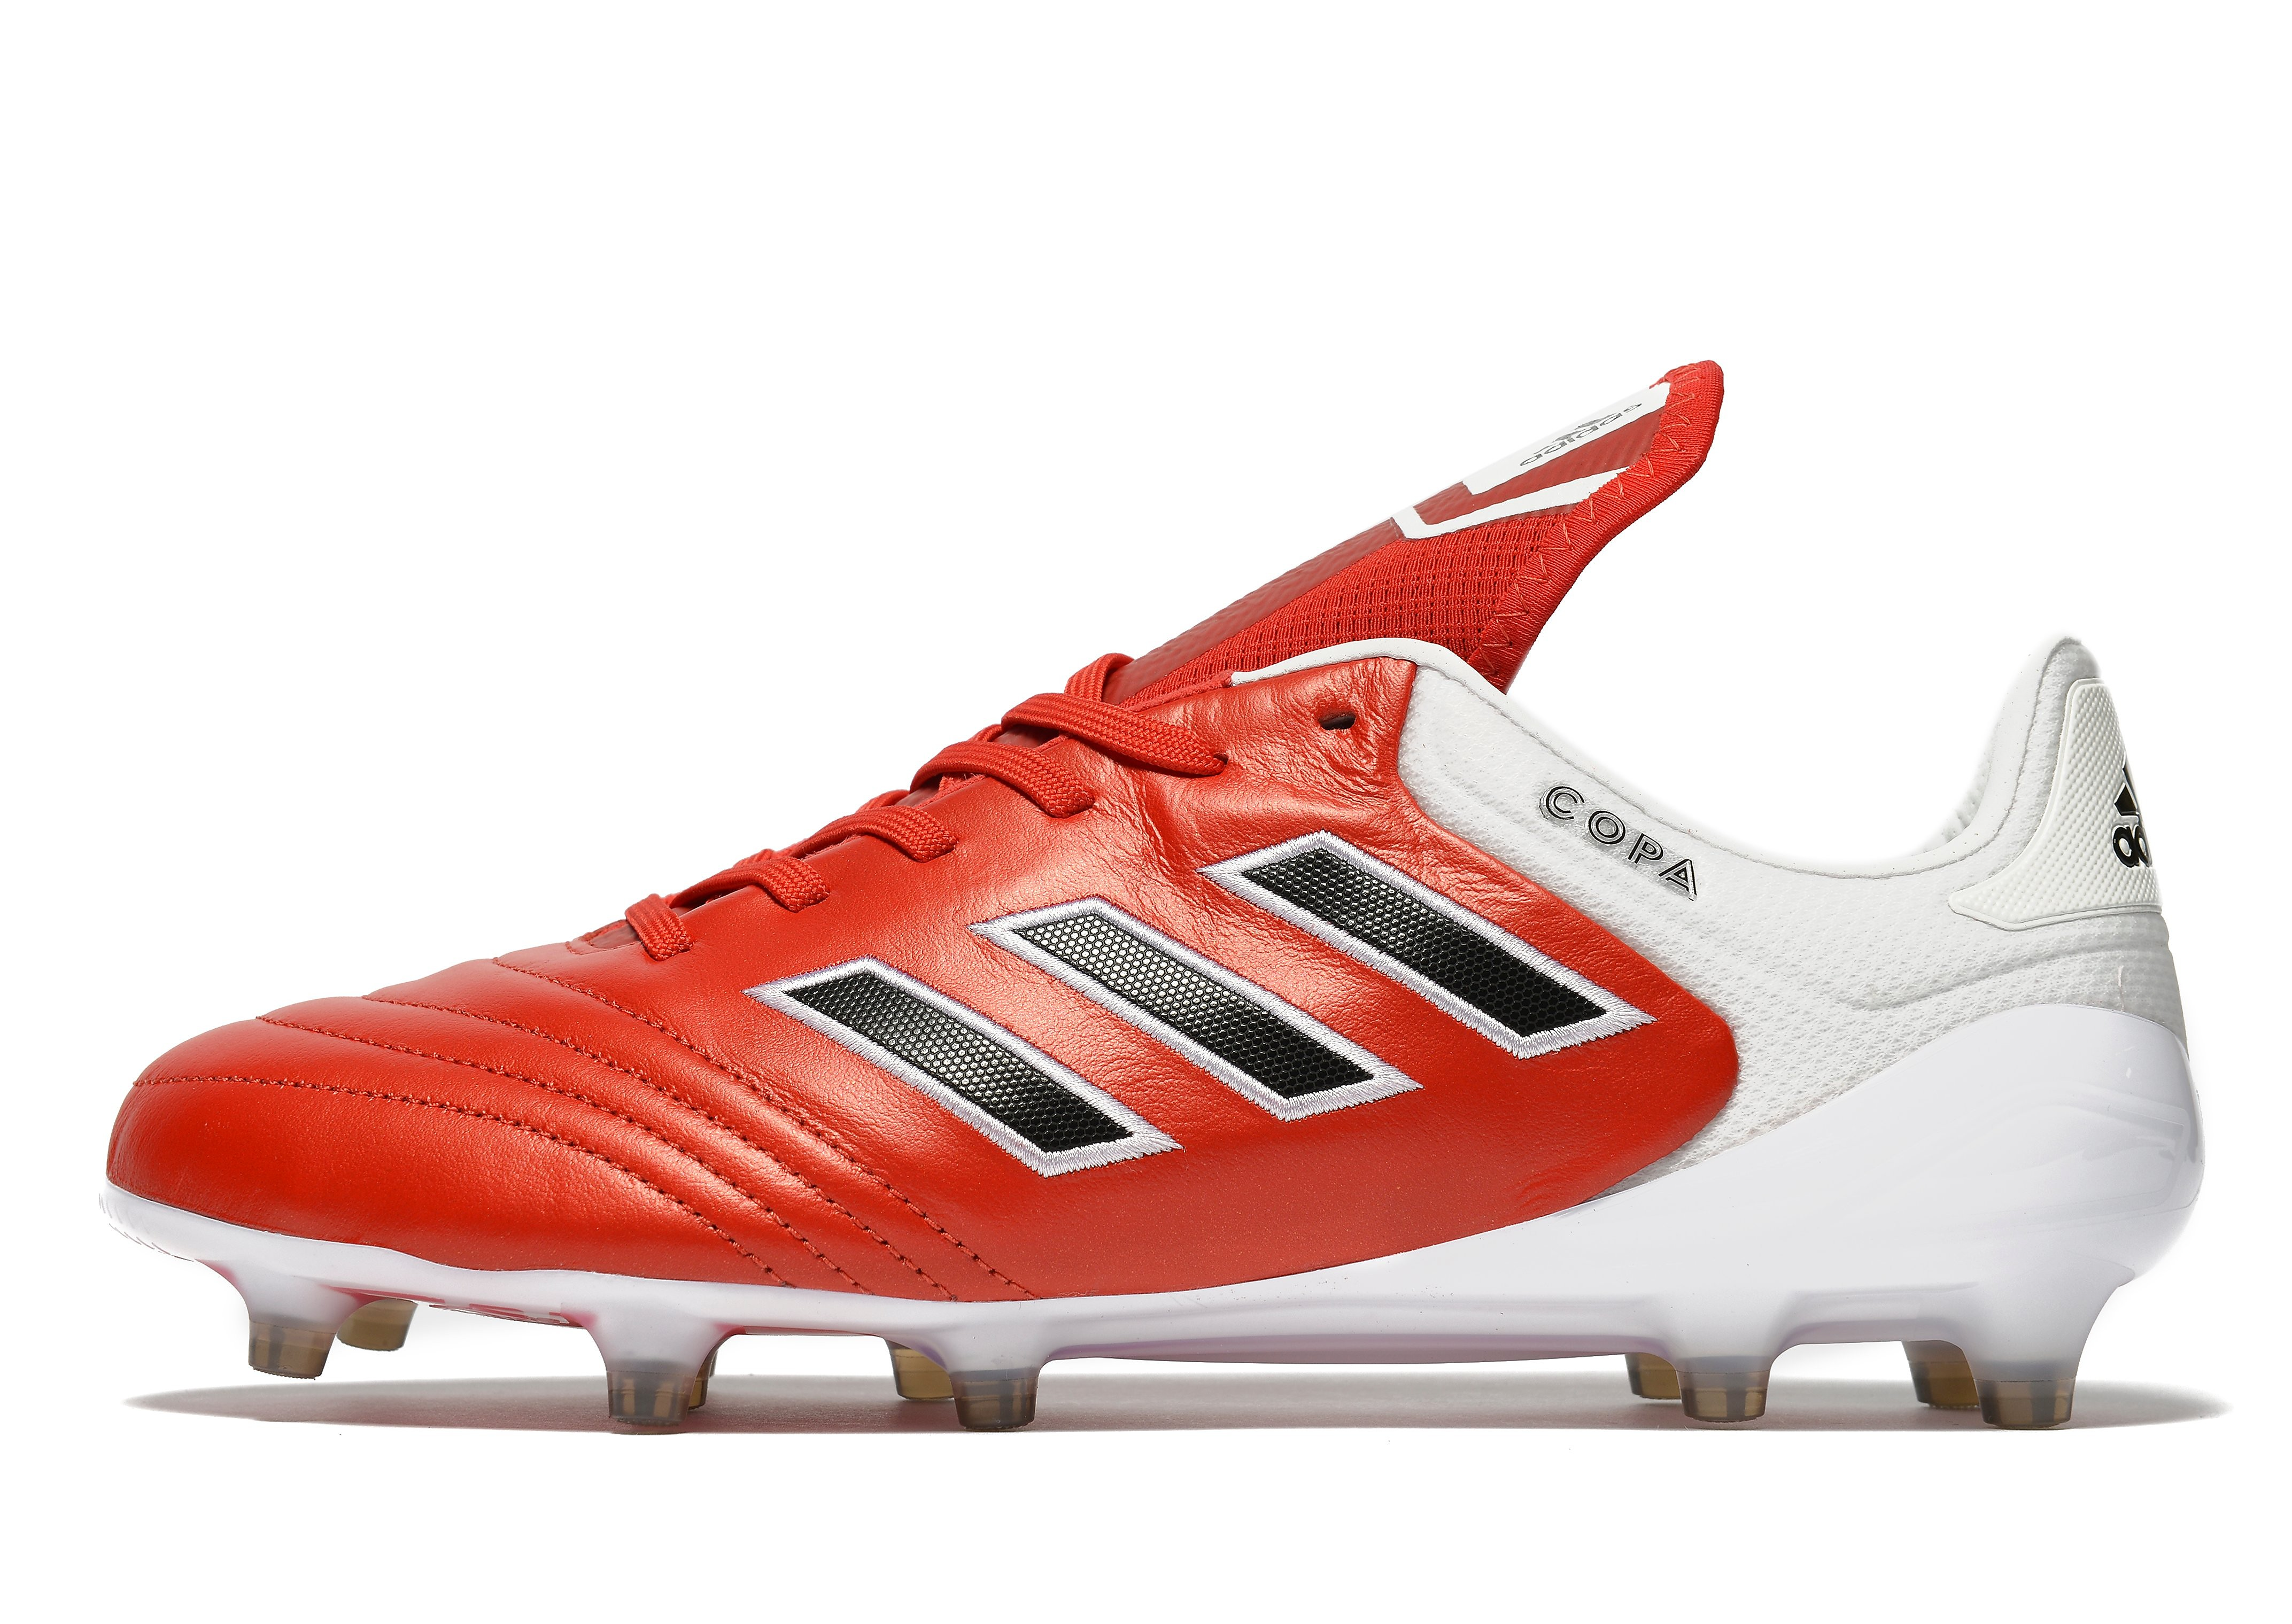 adidas Red Limit Copa 17.1 FG